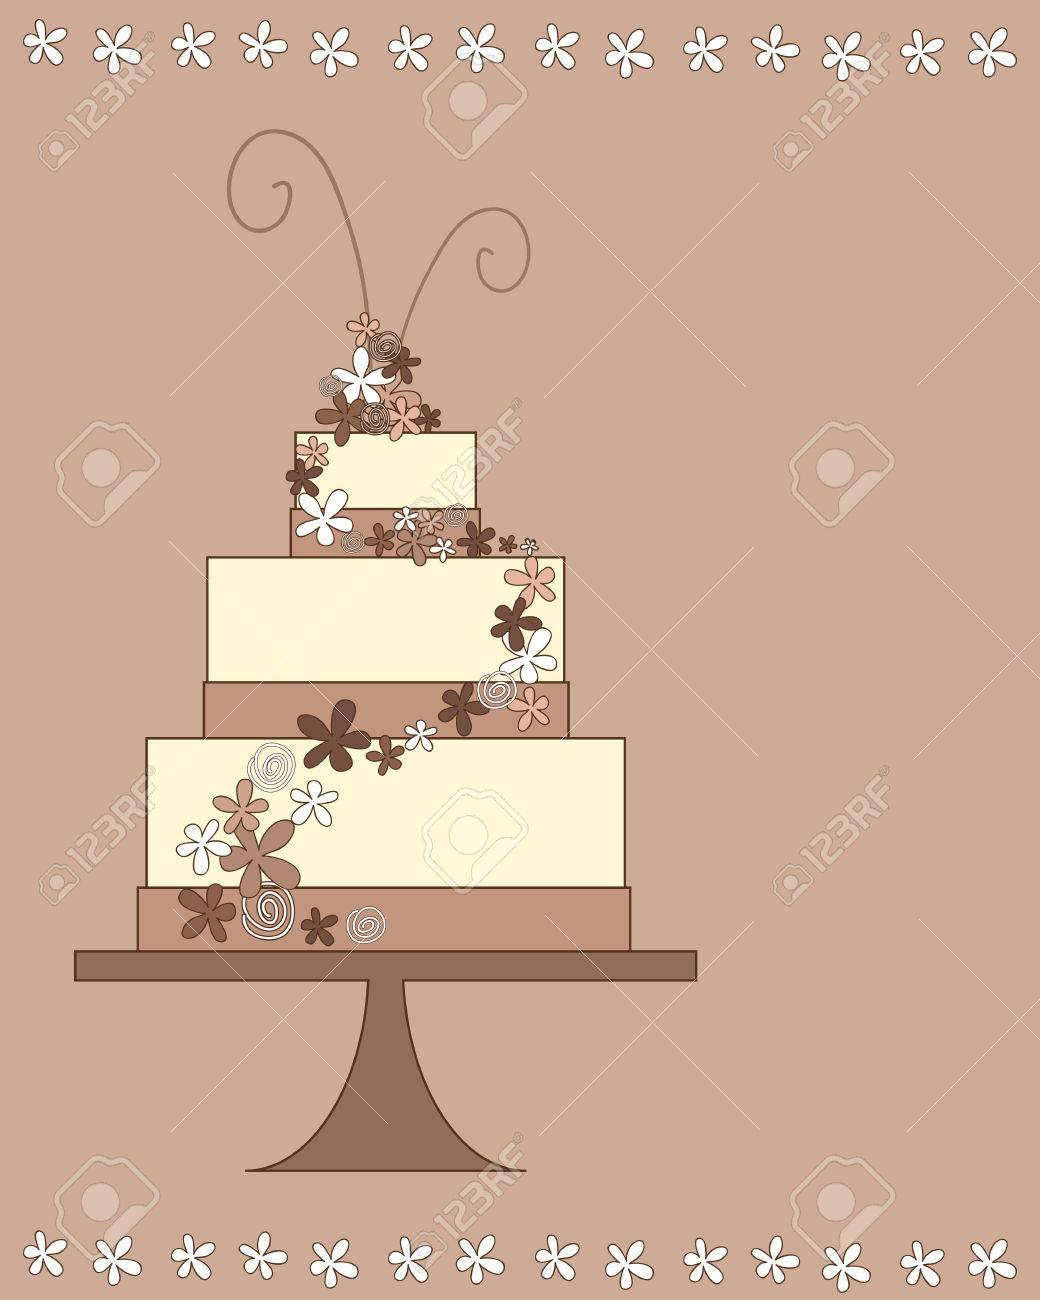 An Illustration Of A Stylized Party Celebration Cake Greeting Royalty Free Cliparts Vectors And Stock Illustration Image 23719021